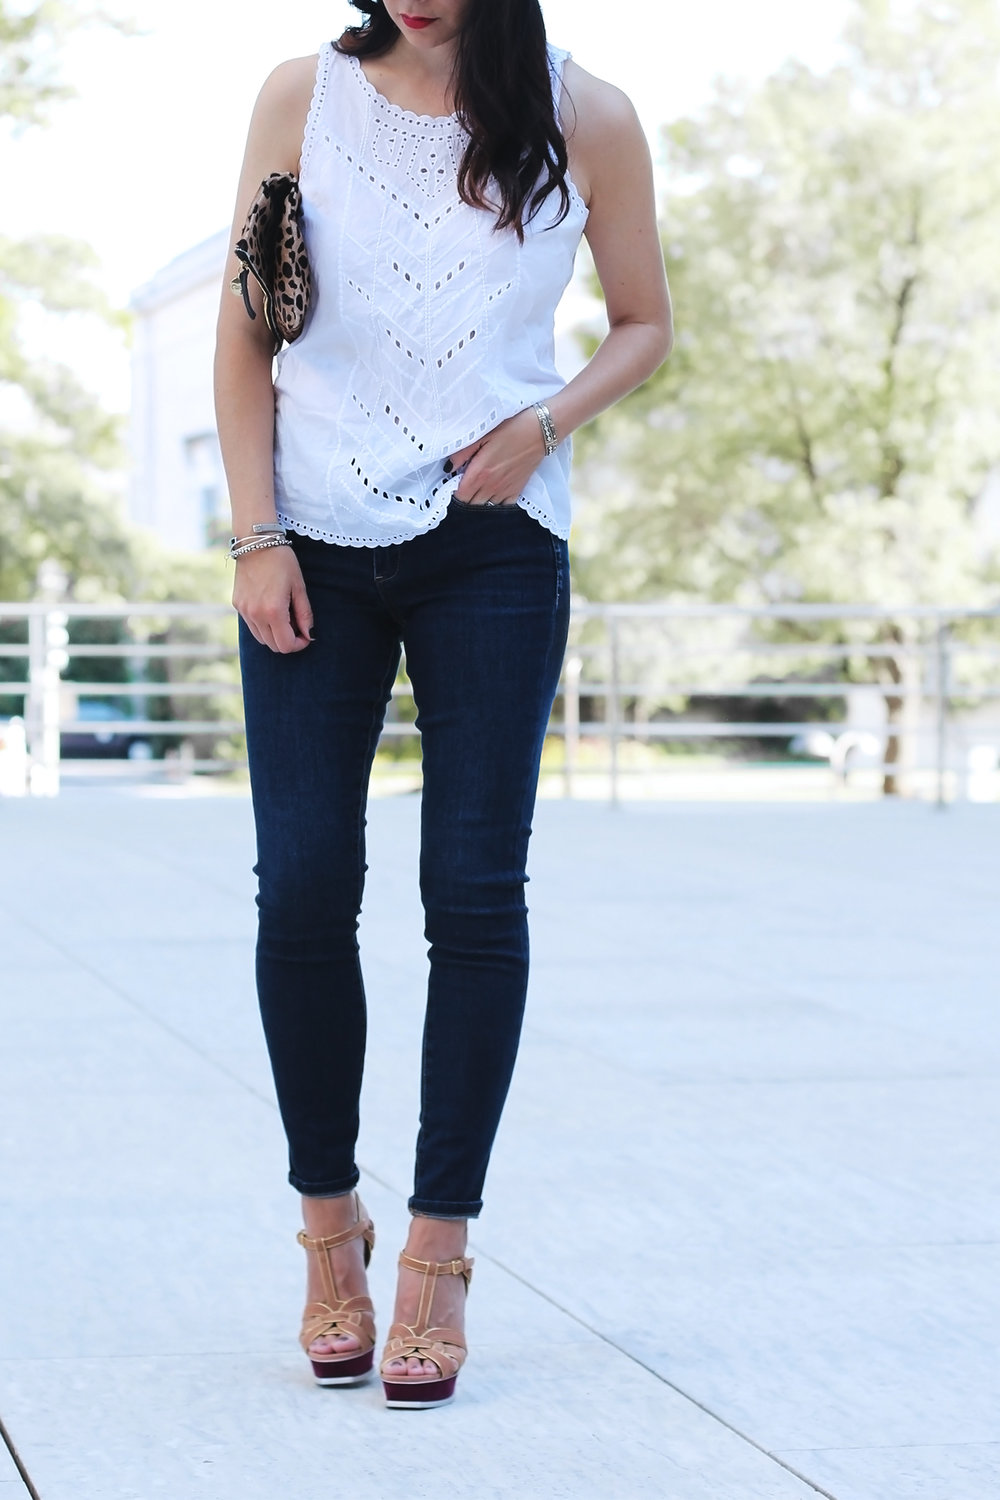 BlankNYC Jeans, Dark Wash Jeans Outfit